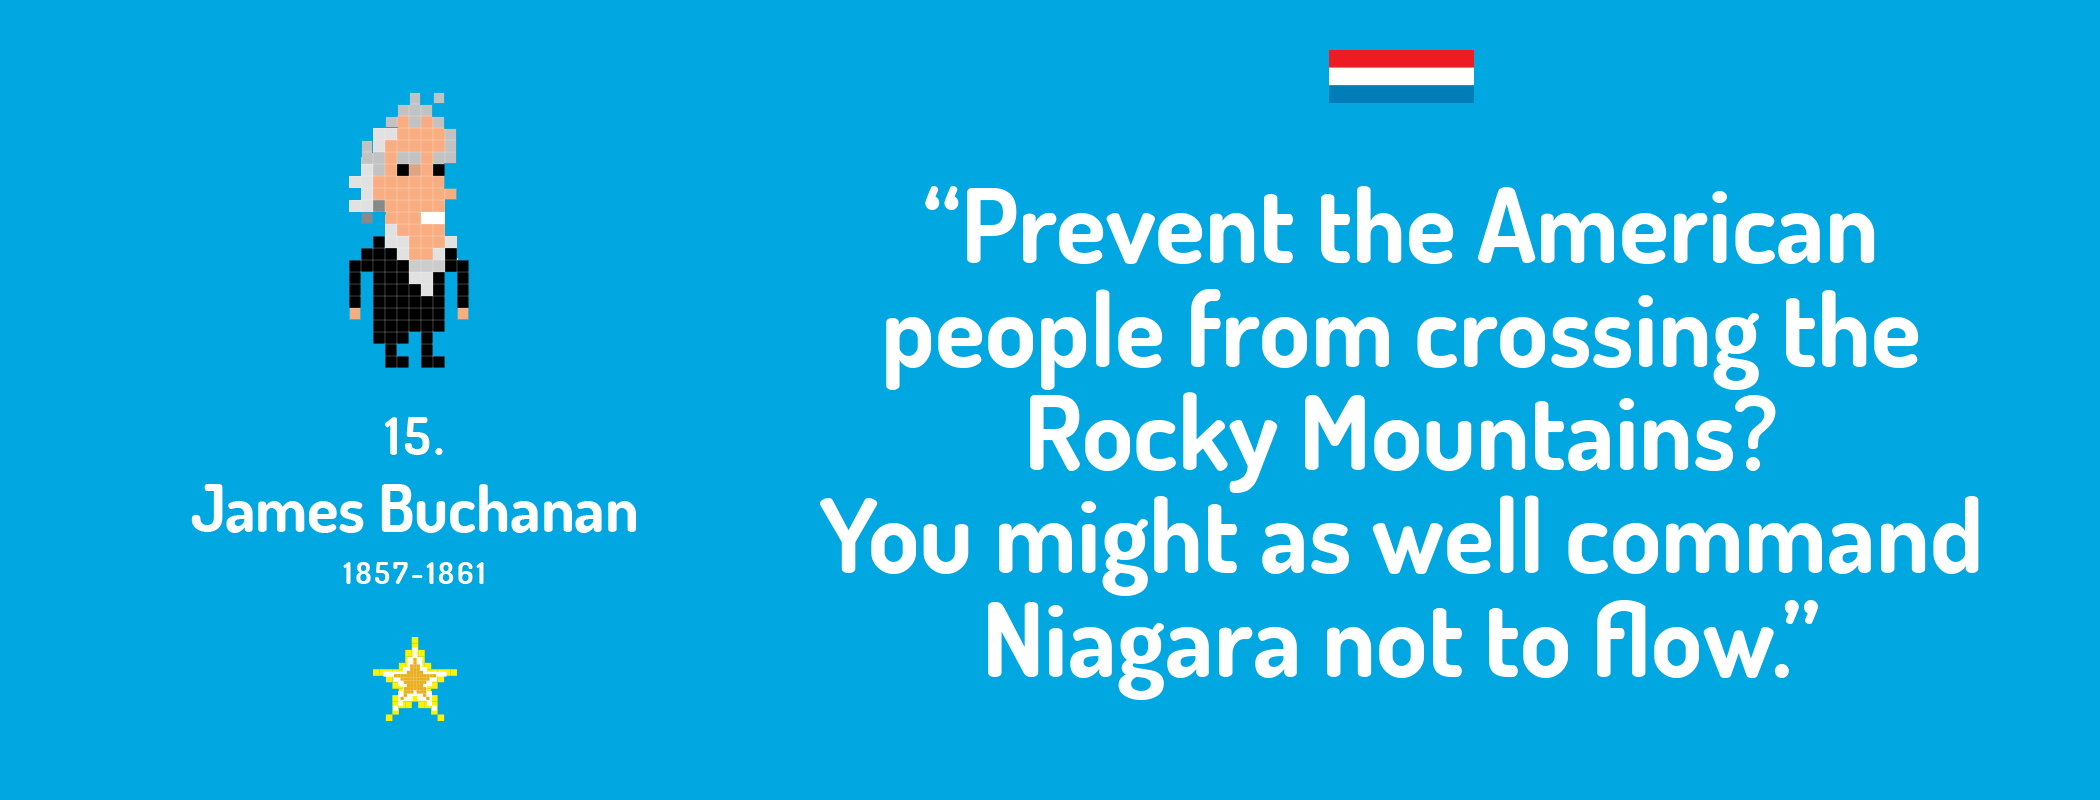 Prevent the American people from crossing the Rocky Mountains? You might as well command Niagara not to flow.